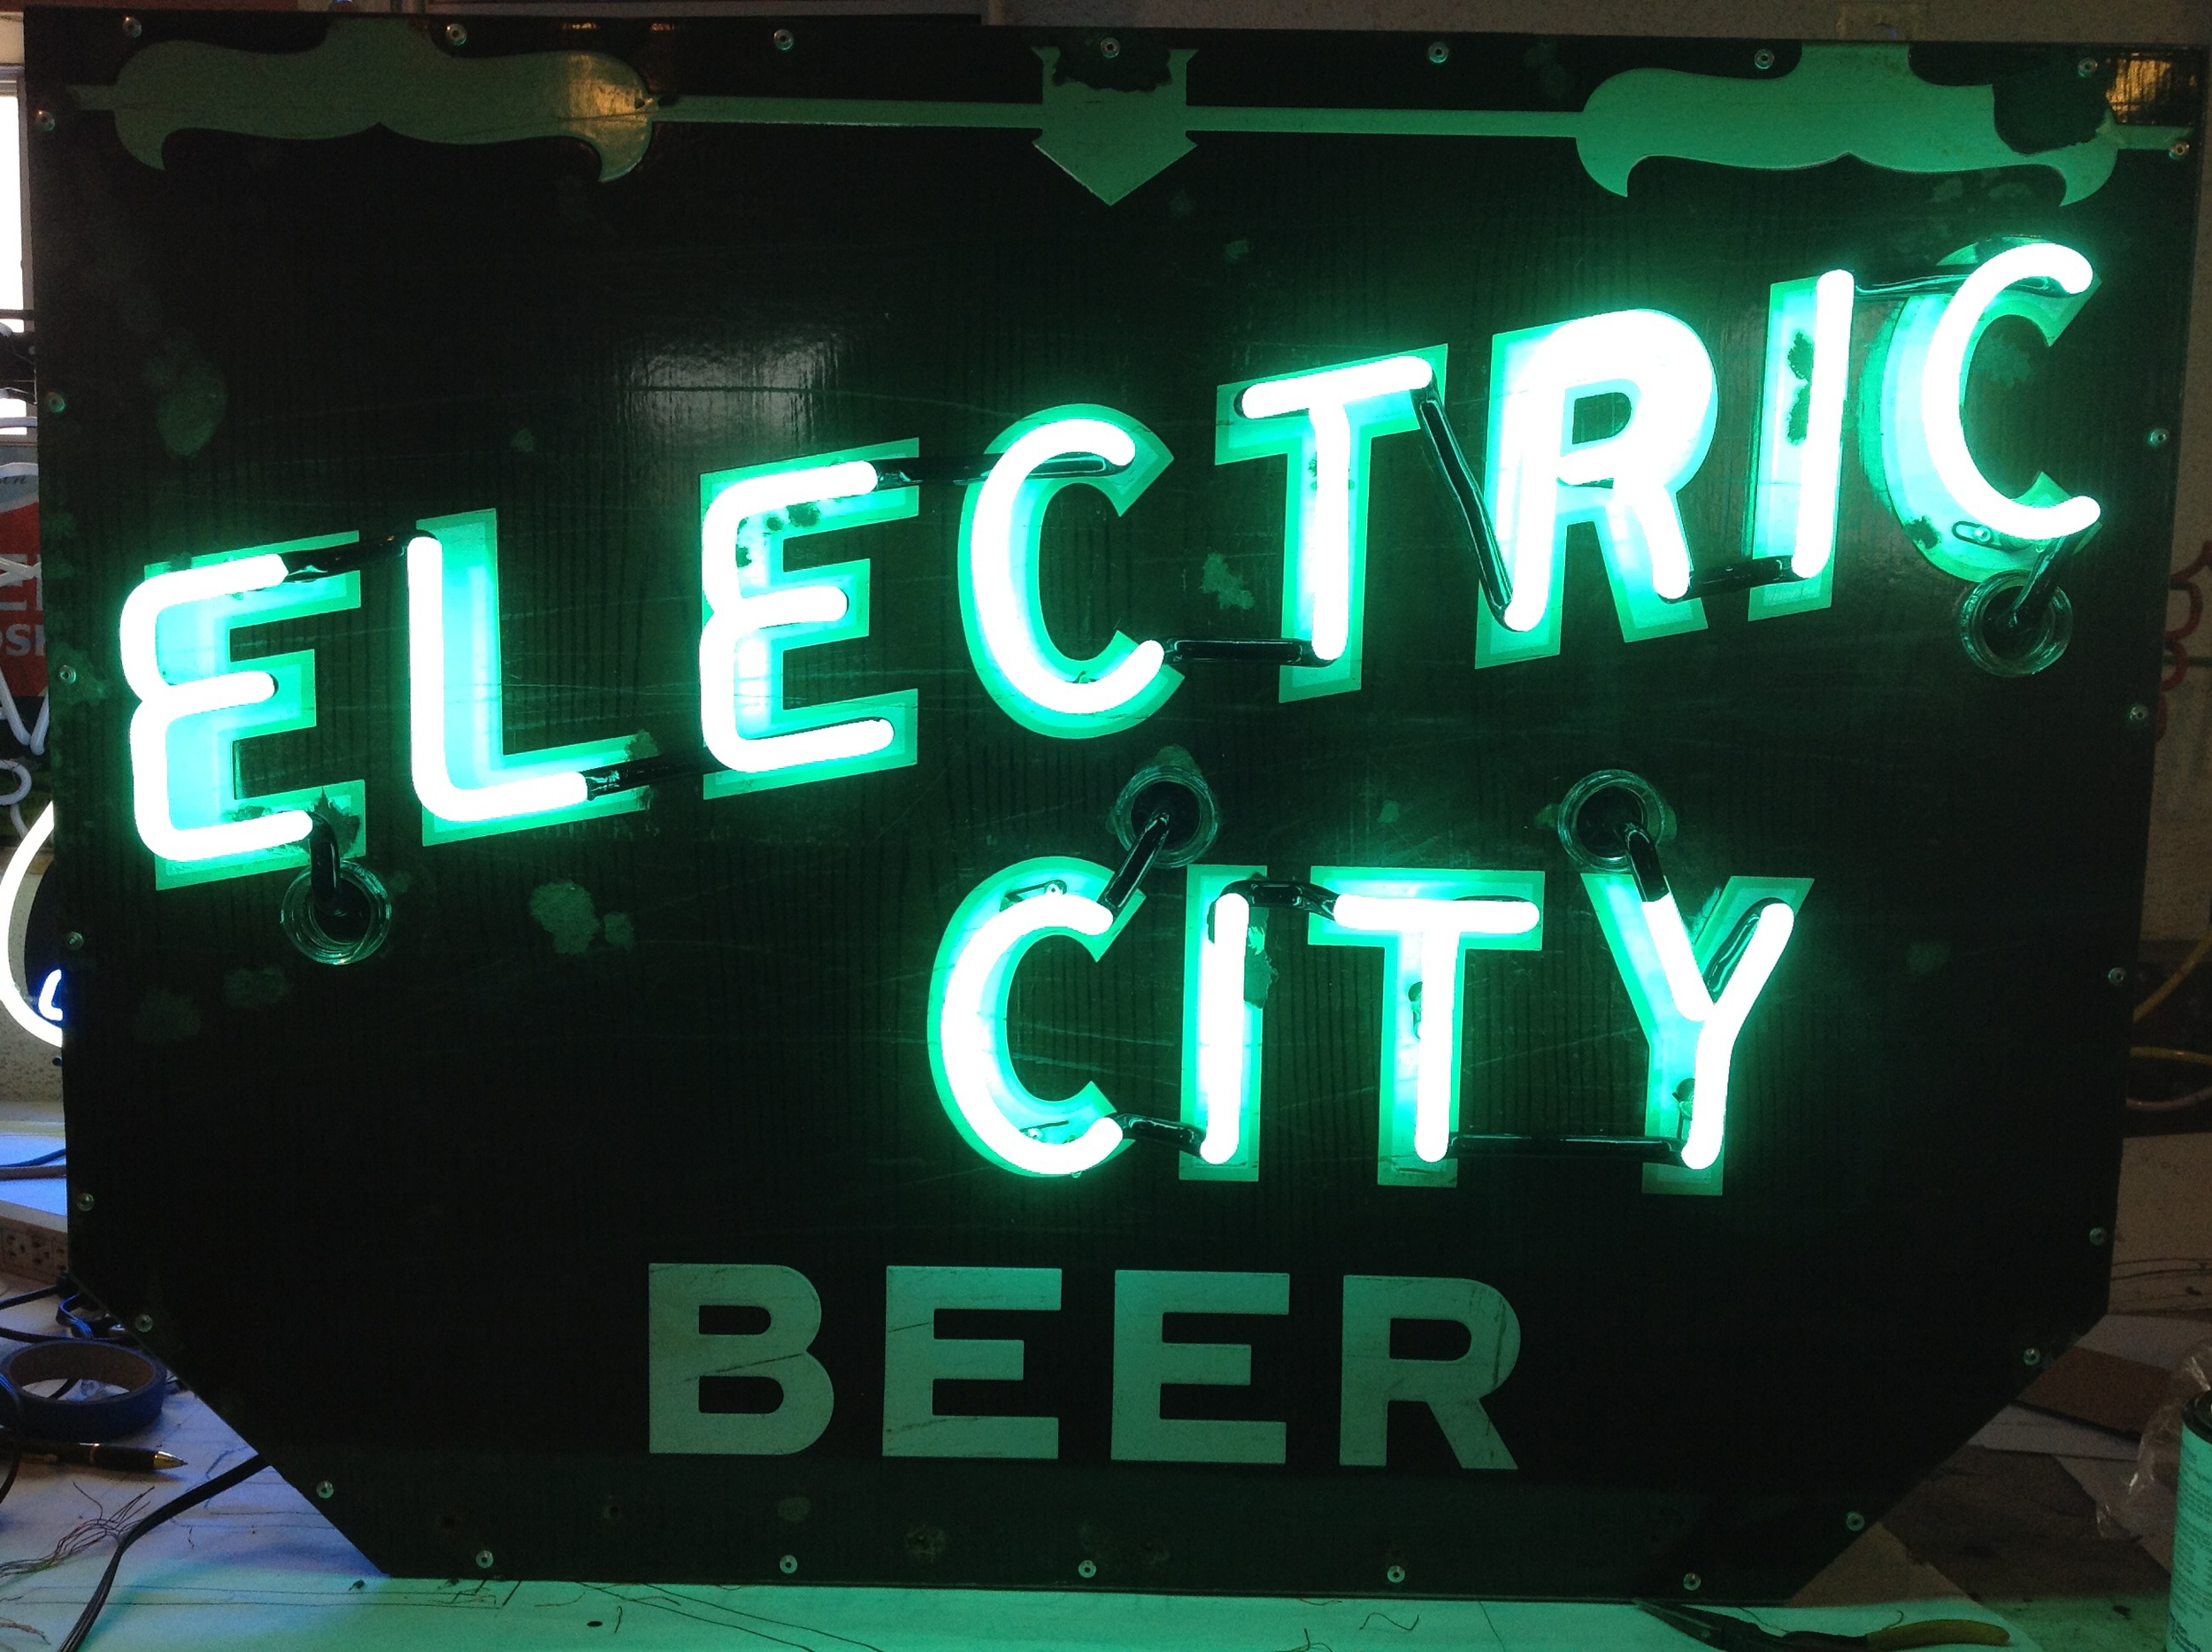 Electric City Beer - Neon & Porcelain